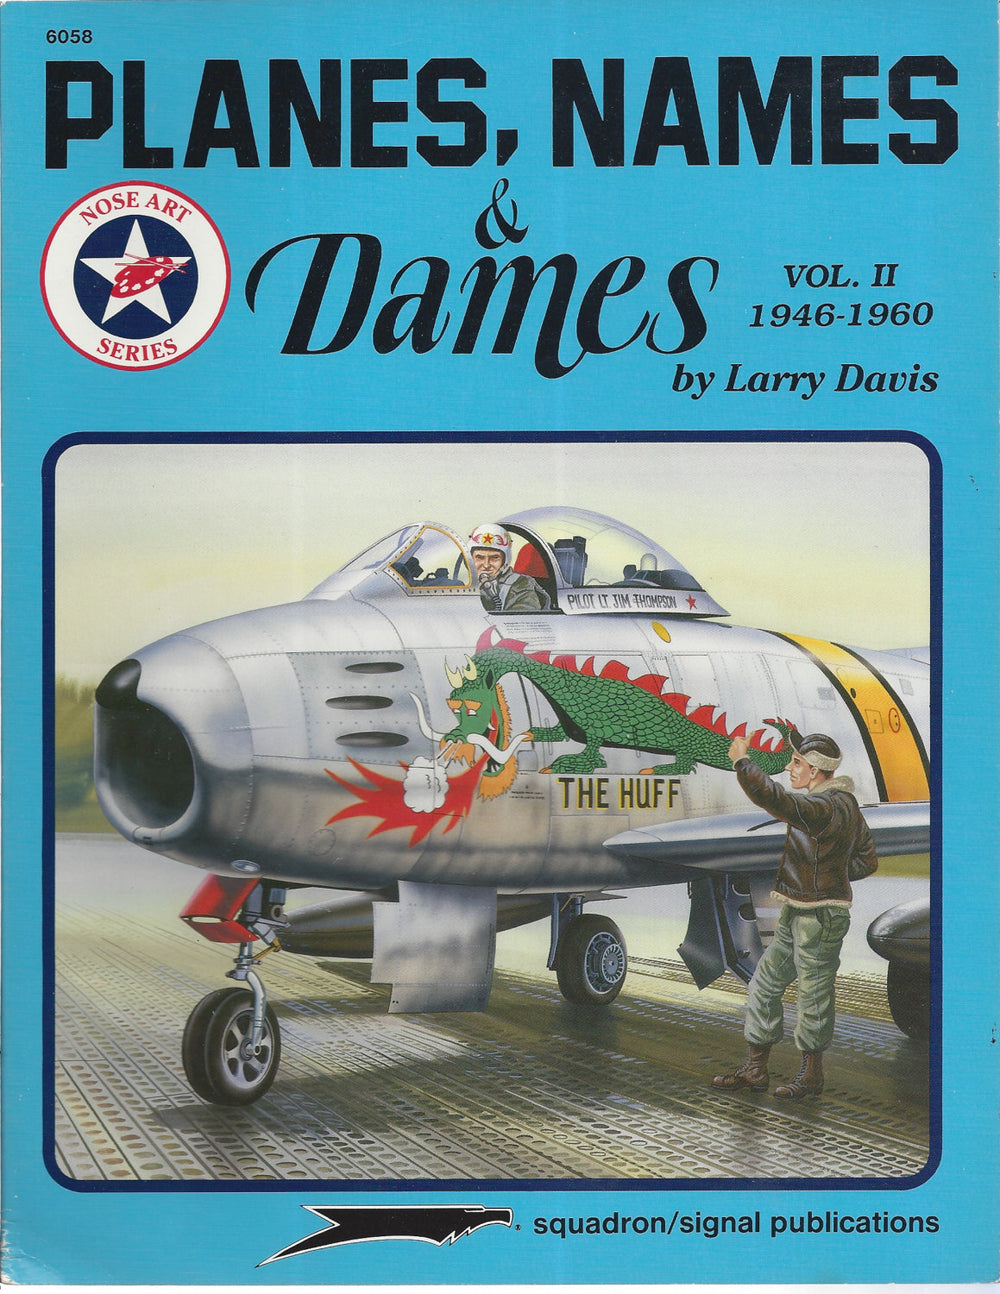 Planes, Names & Dames, Vol. II: 1946-1960 - Aircraft Nose Art series by Larry Davis (Paperback)